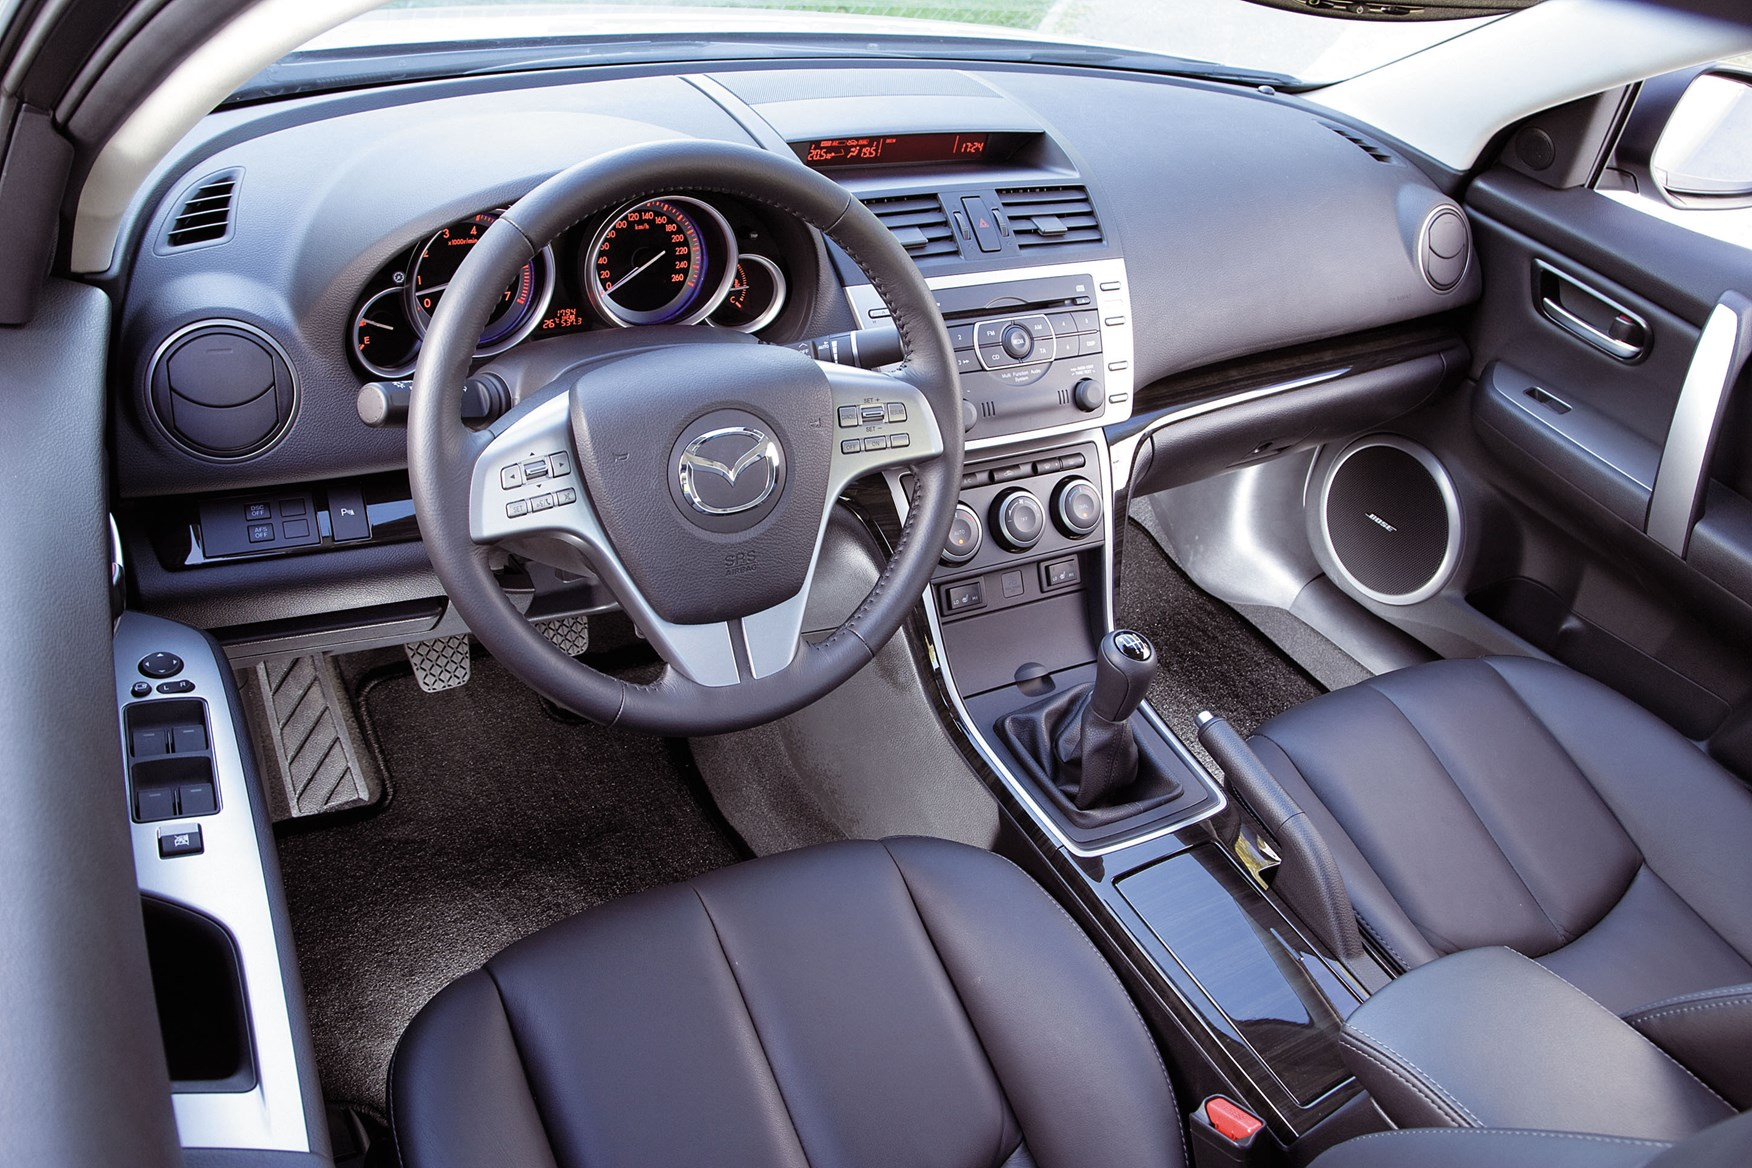 https://parkers-images.bauersecure.com/gallery-image/pagefiles/202853/interior-detail/1752x1168/mazda6_interior_6.jpg